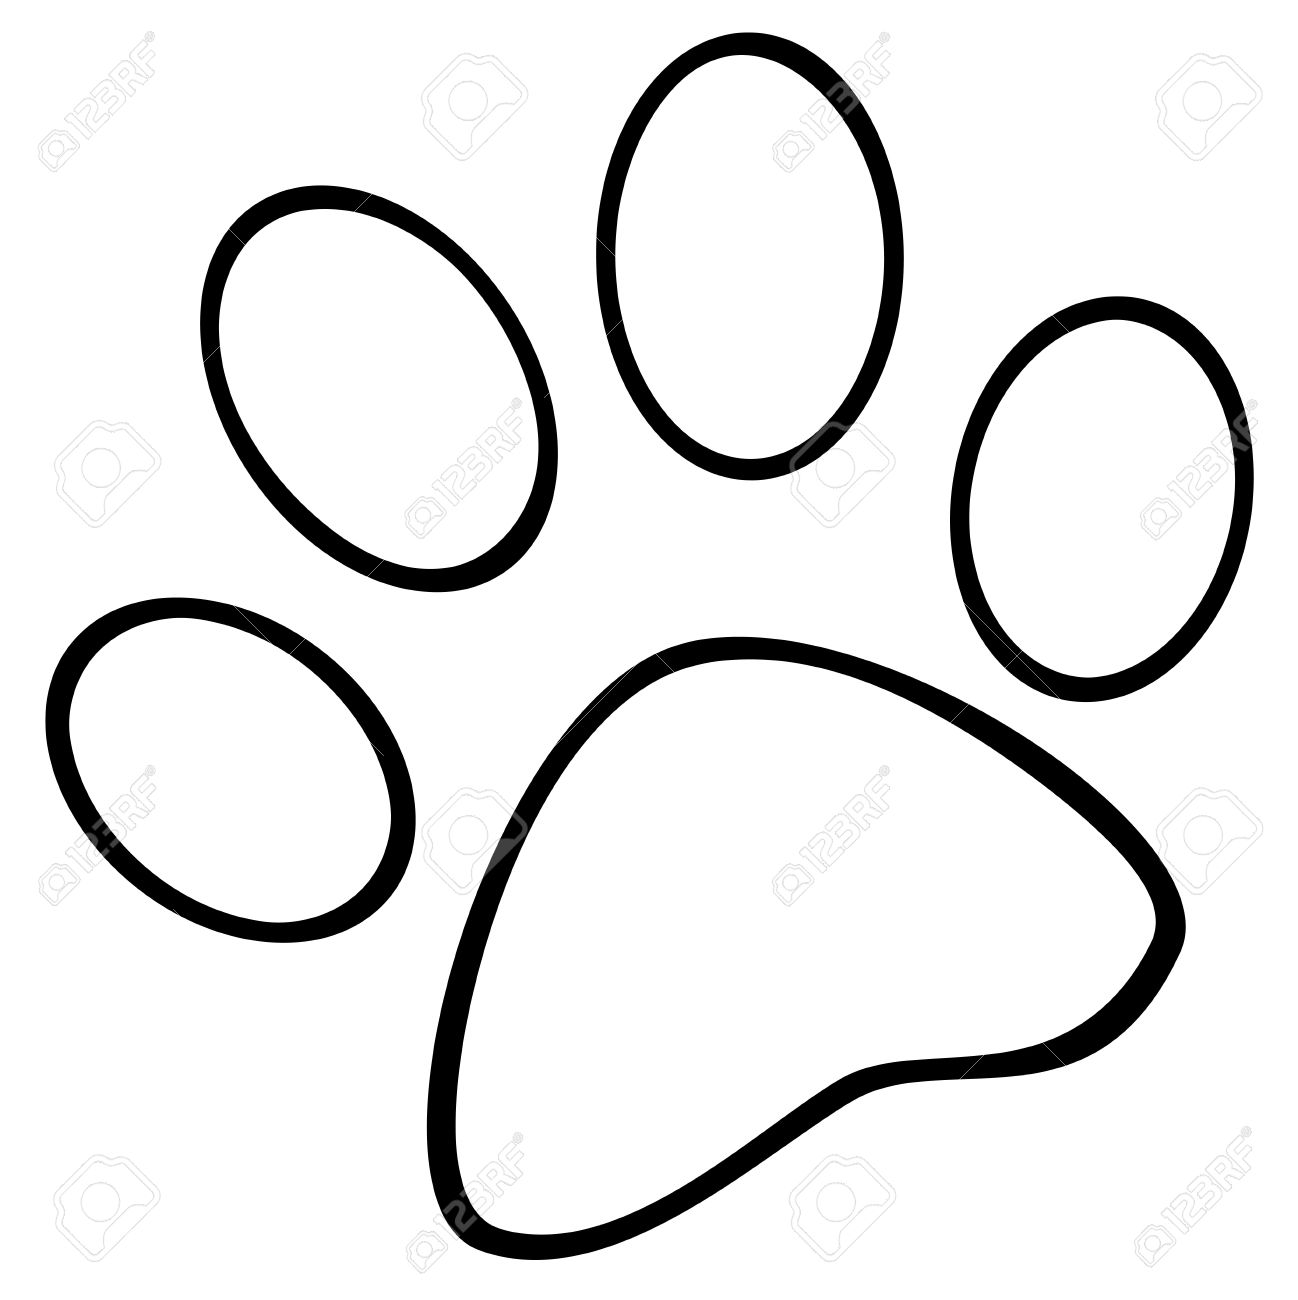 8638 Paw free clipart.